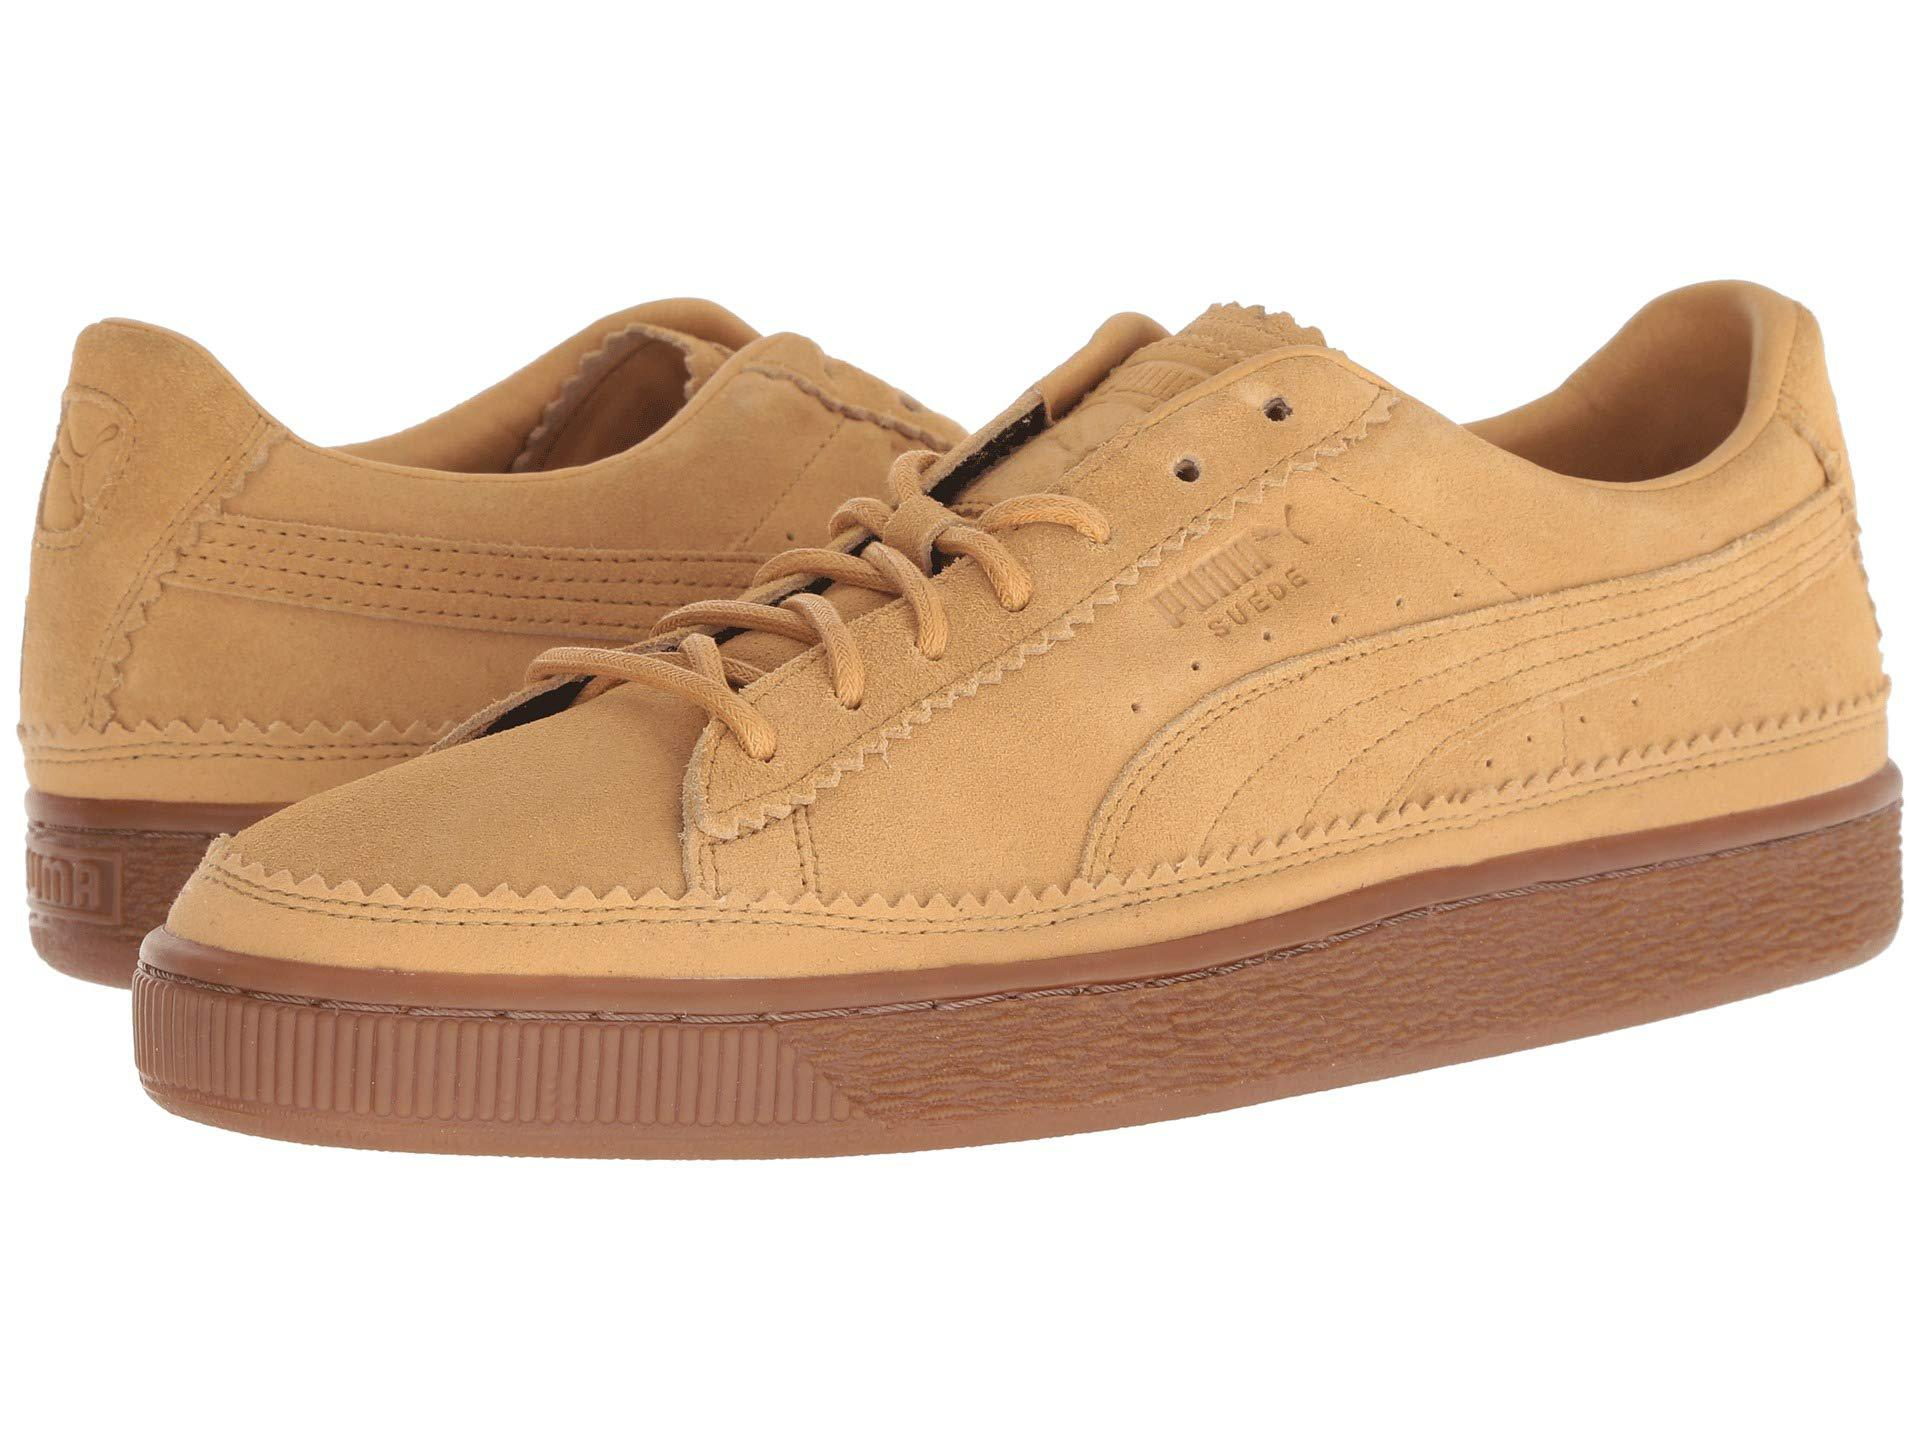 83bfd50b3c93c6 Lyst - PUMA Suede Classic Brogue (taffy taffy) Men s Lace Up Casual ...